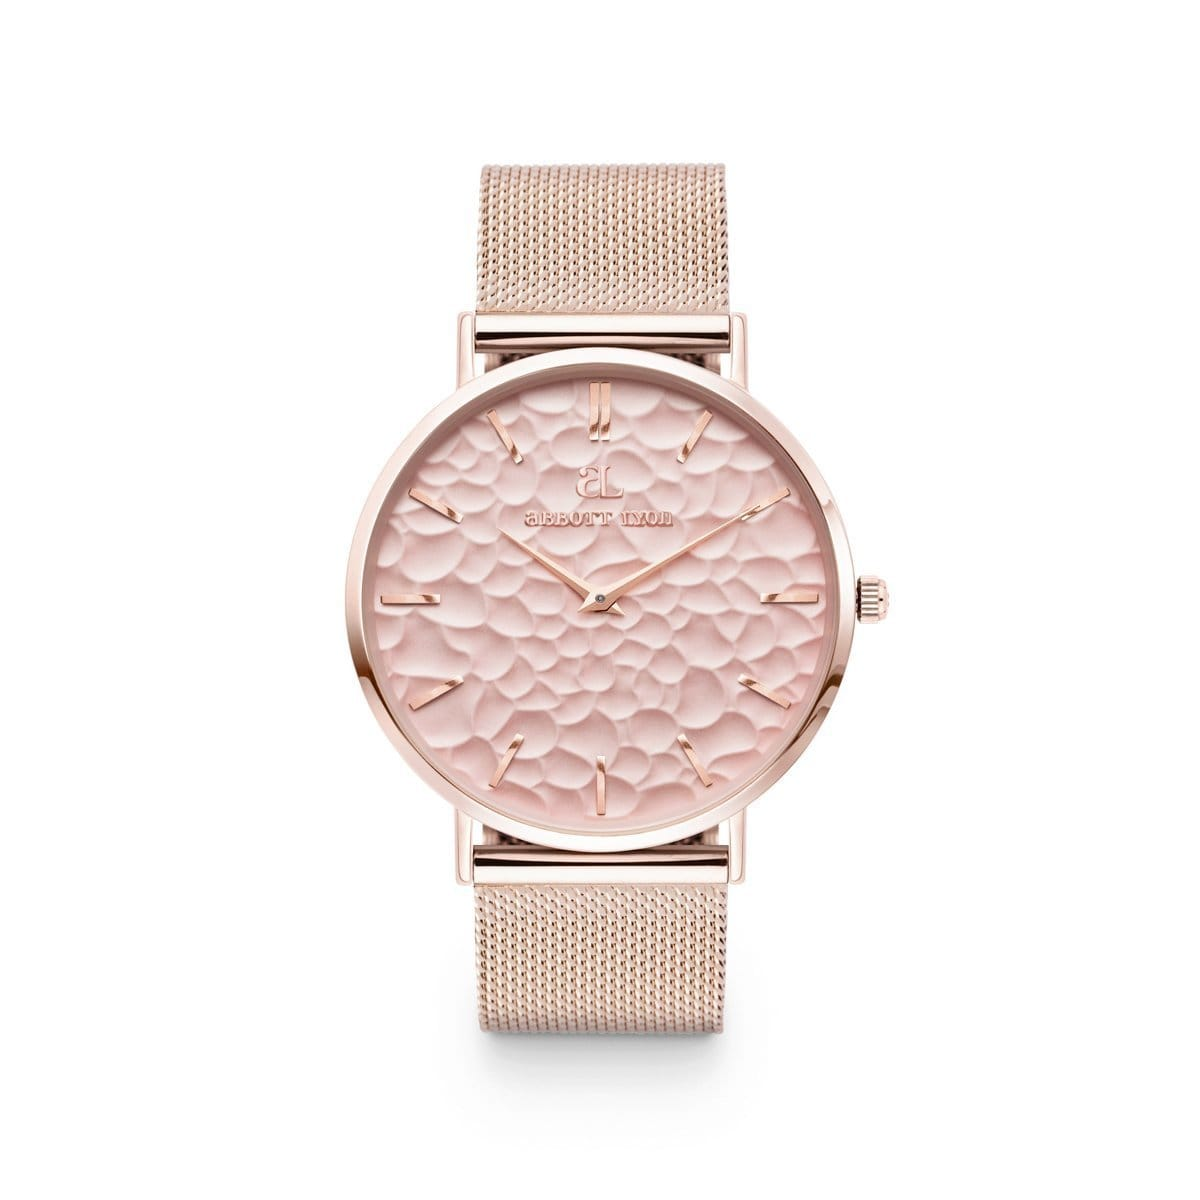 Blush Chain La Ponche 40 (Blush/Pink)